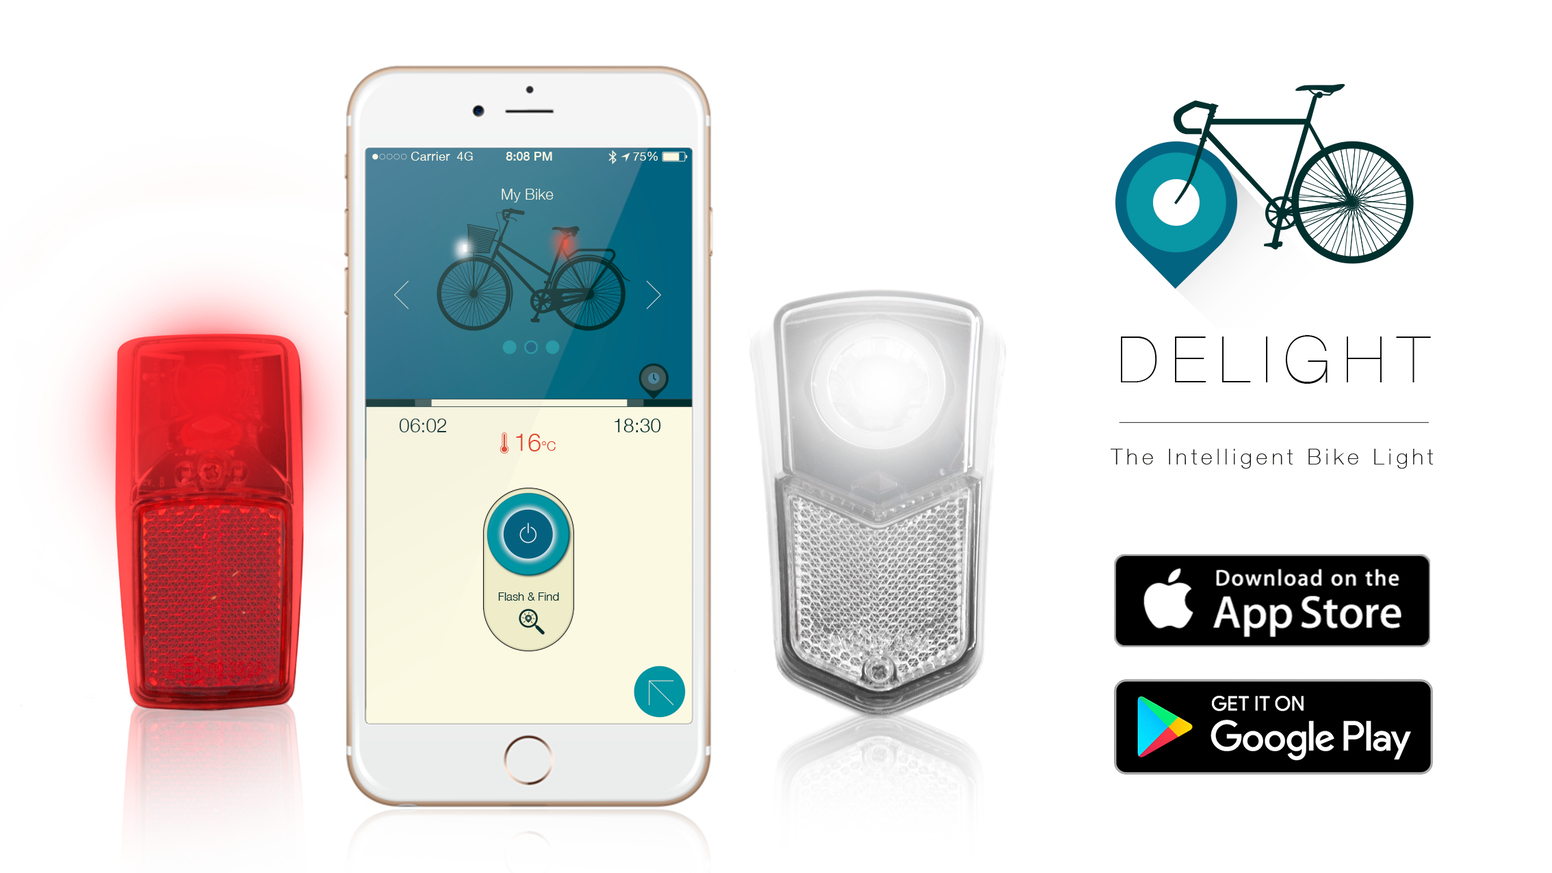 DeLight is a smartphone-enabled bike light that will give you a second chance to find your lost bike.